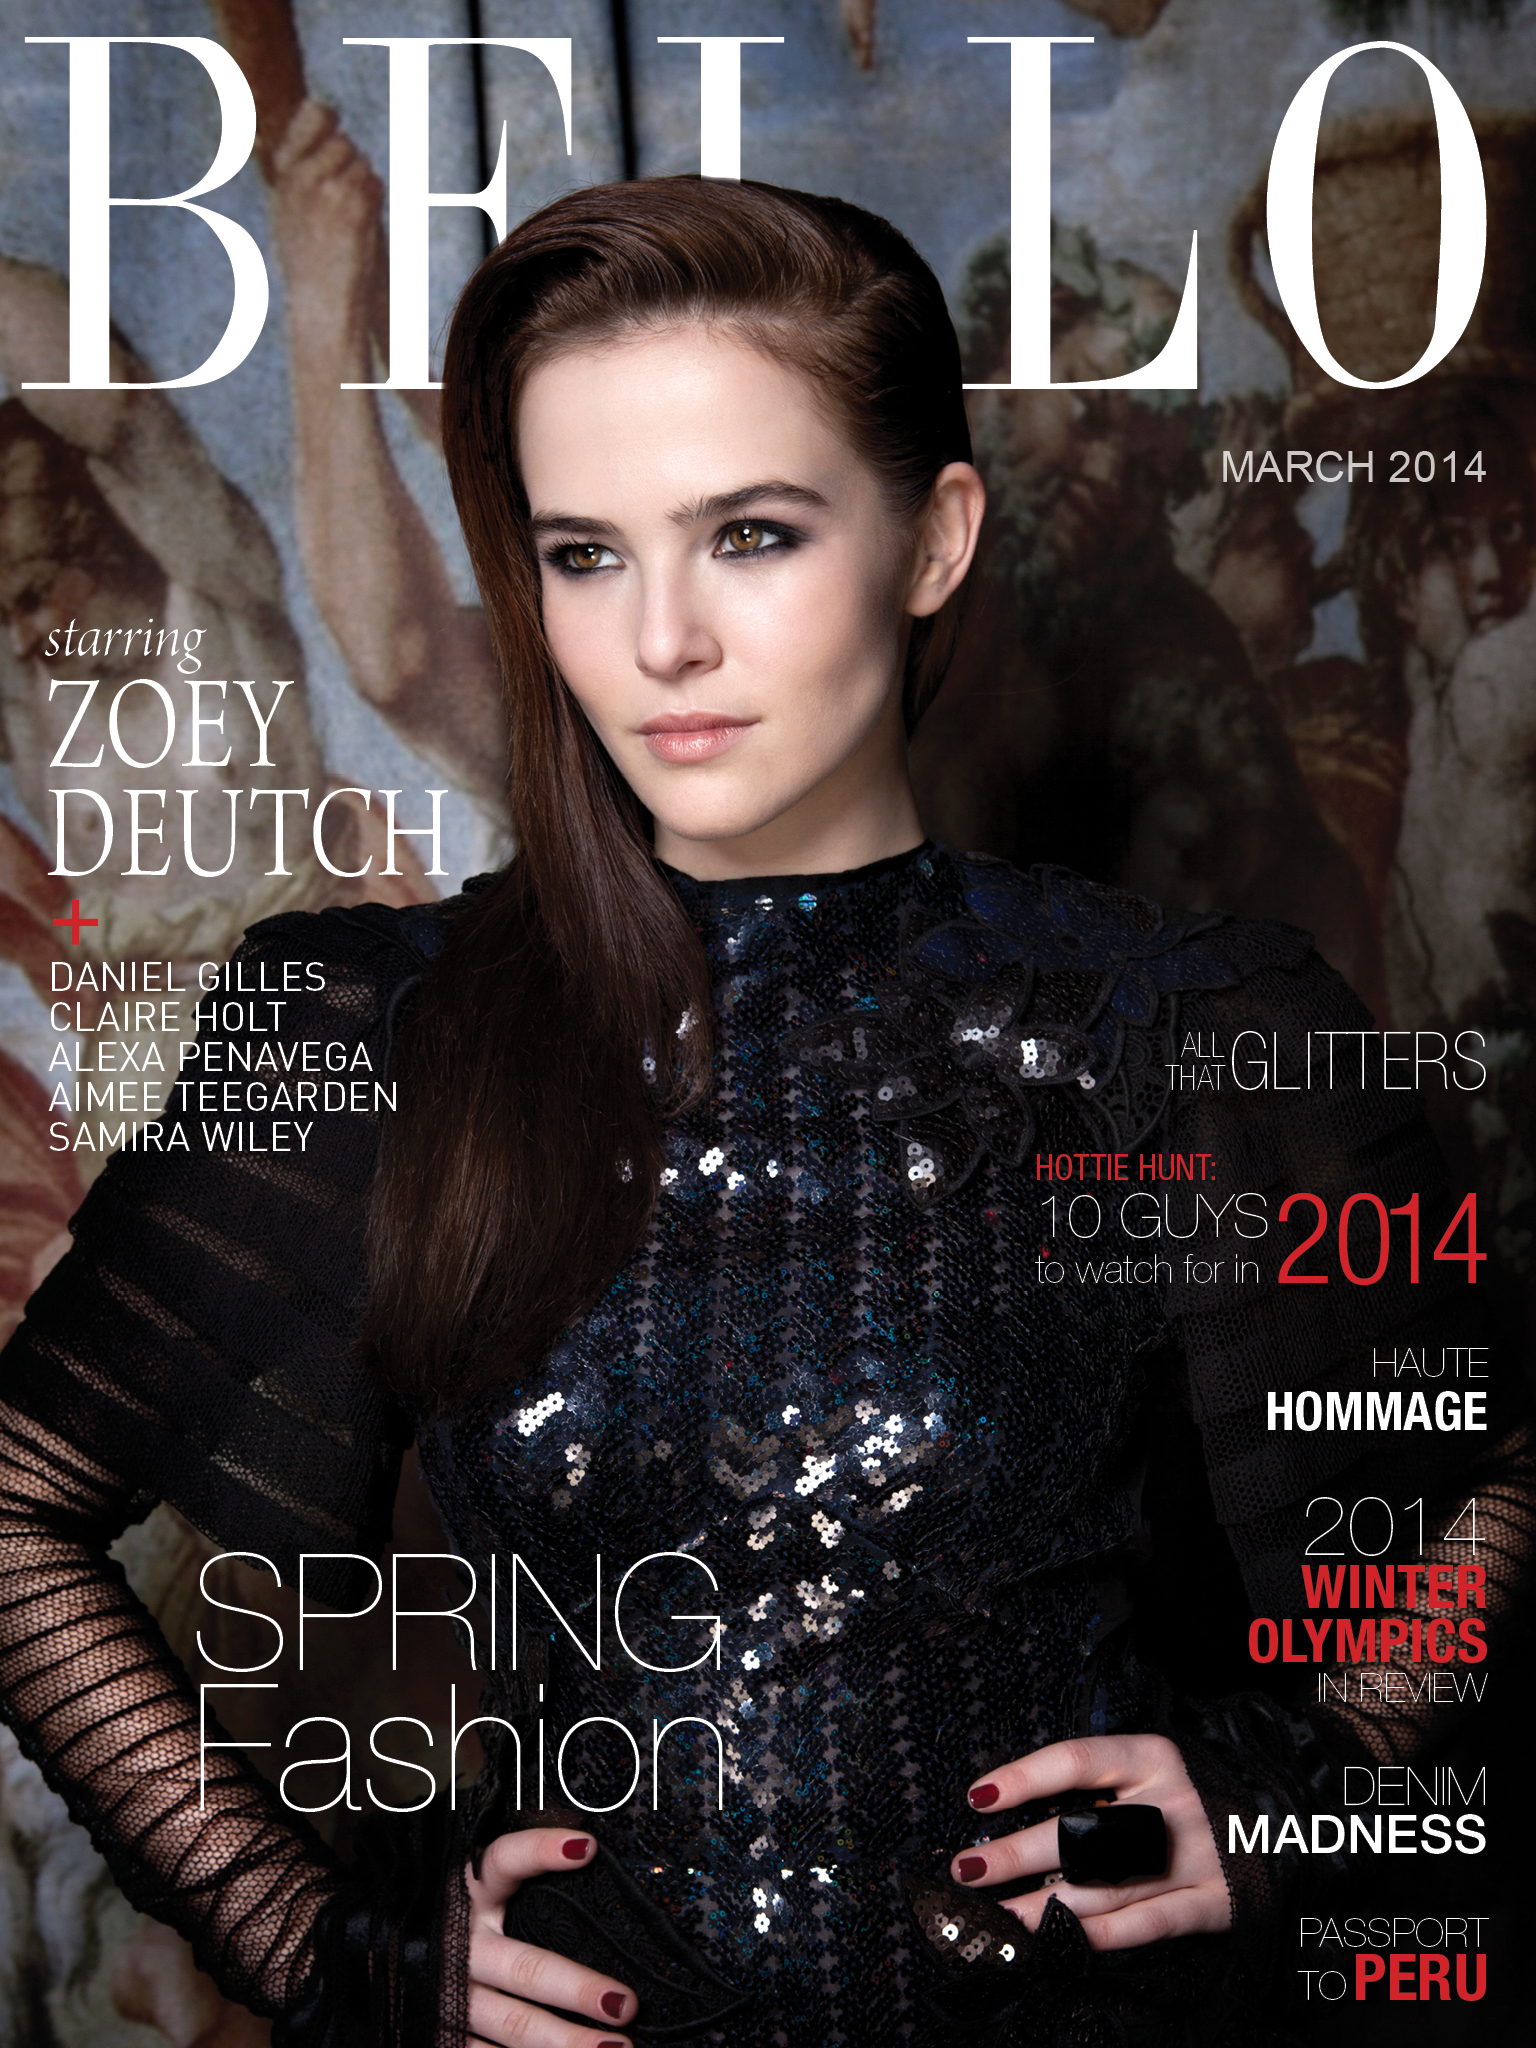 Bello Magazine Zoey Deutch Cover March 2014 in Marc Jacobs